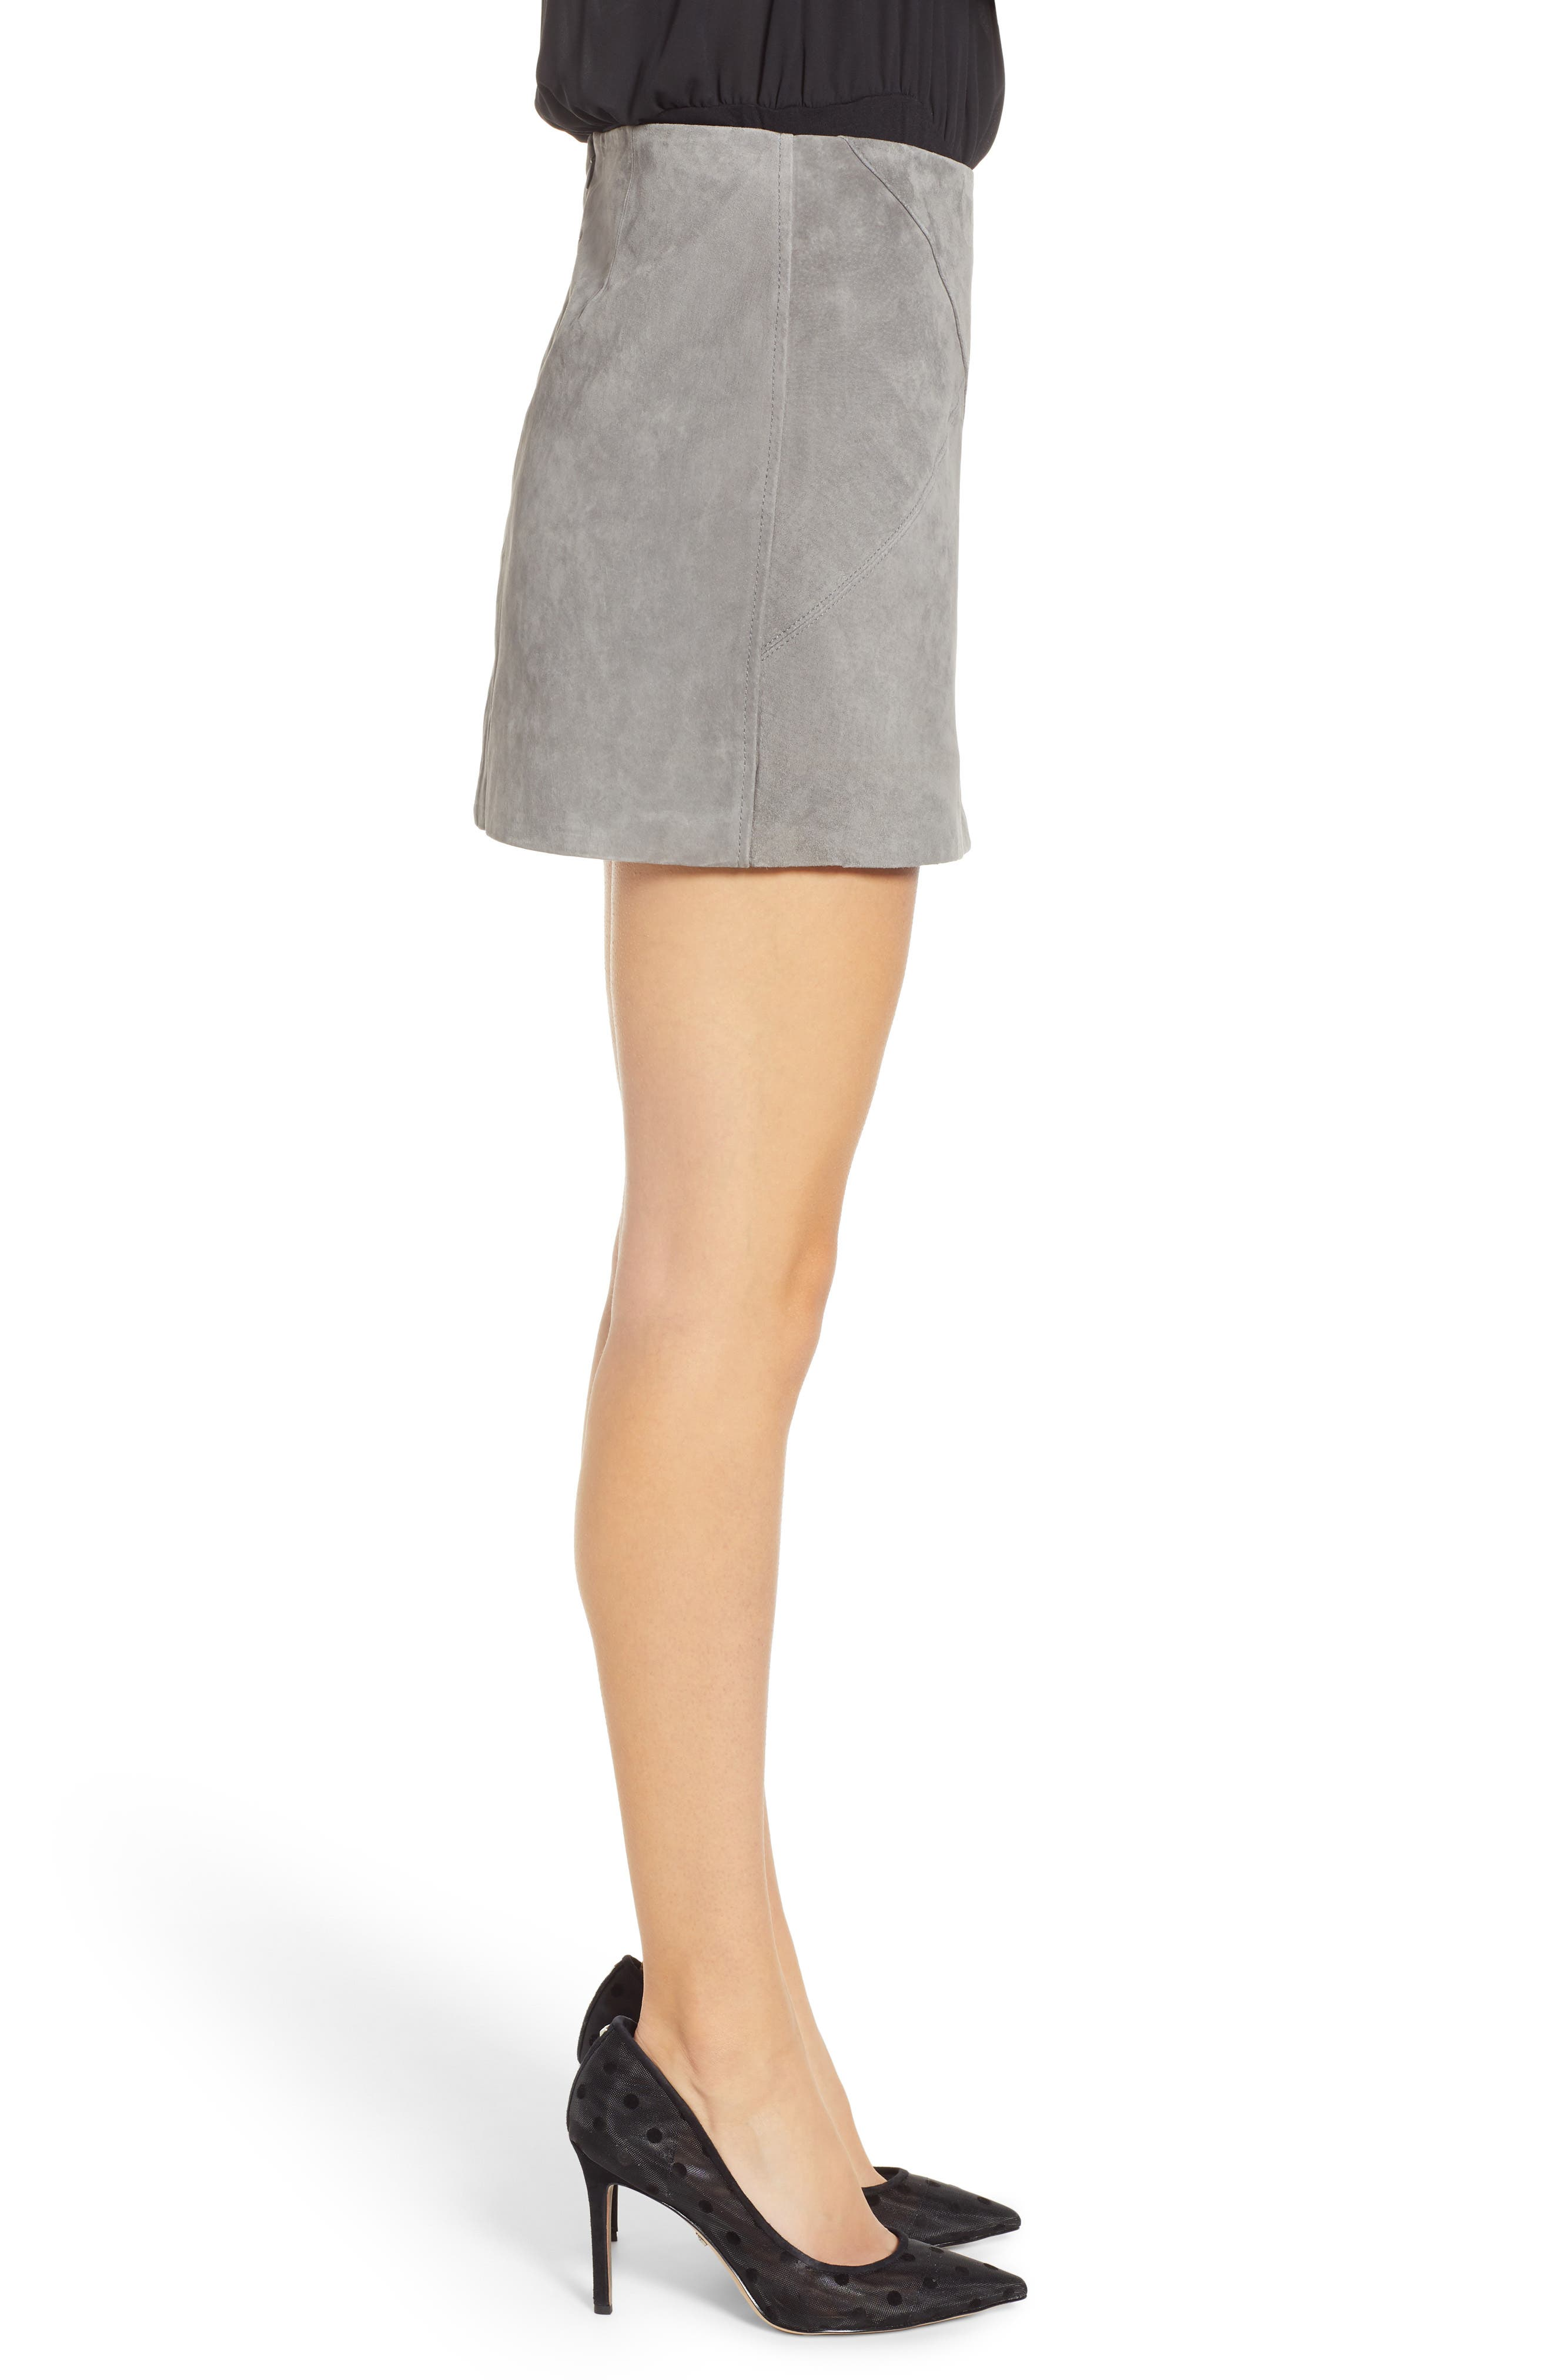 BLANKNYC, Lace-Up Suede Miniskirt, Alternate thumbnail 3, color, SOFT FOG